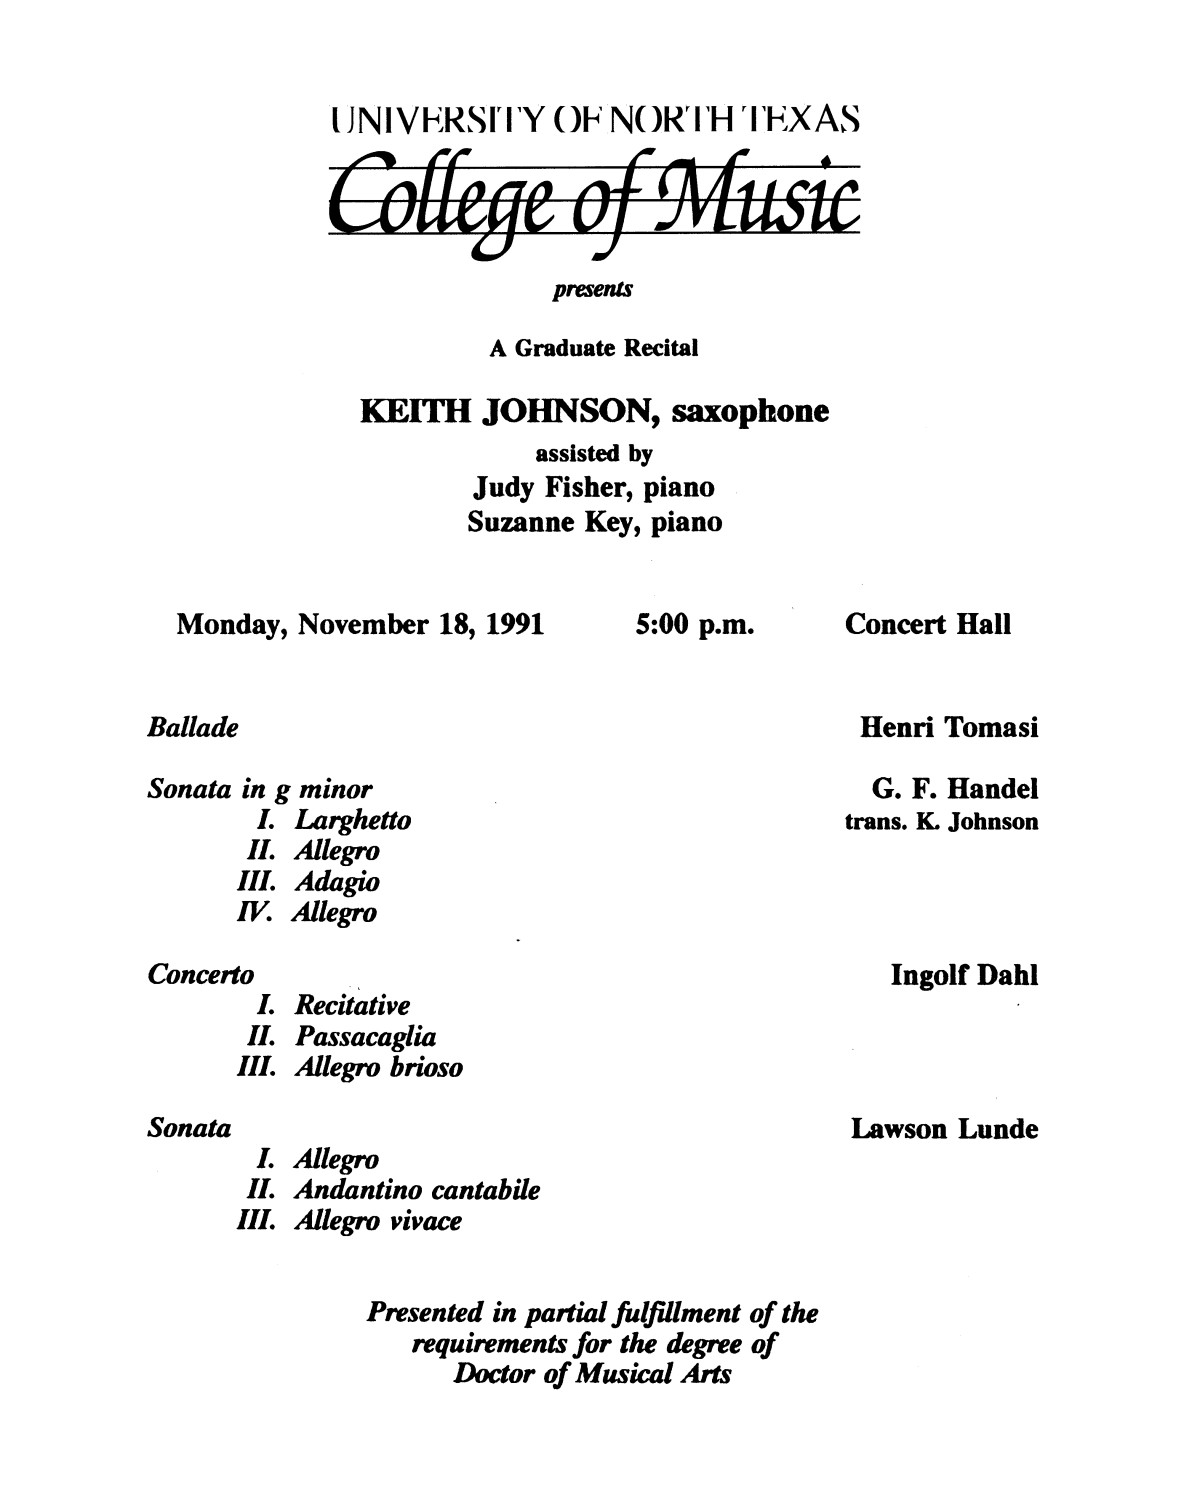 College of Music program book 1991-1992 Student Performances Vol. 2                                                                                                      [Sequence #]: 62 of 310